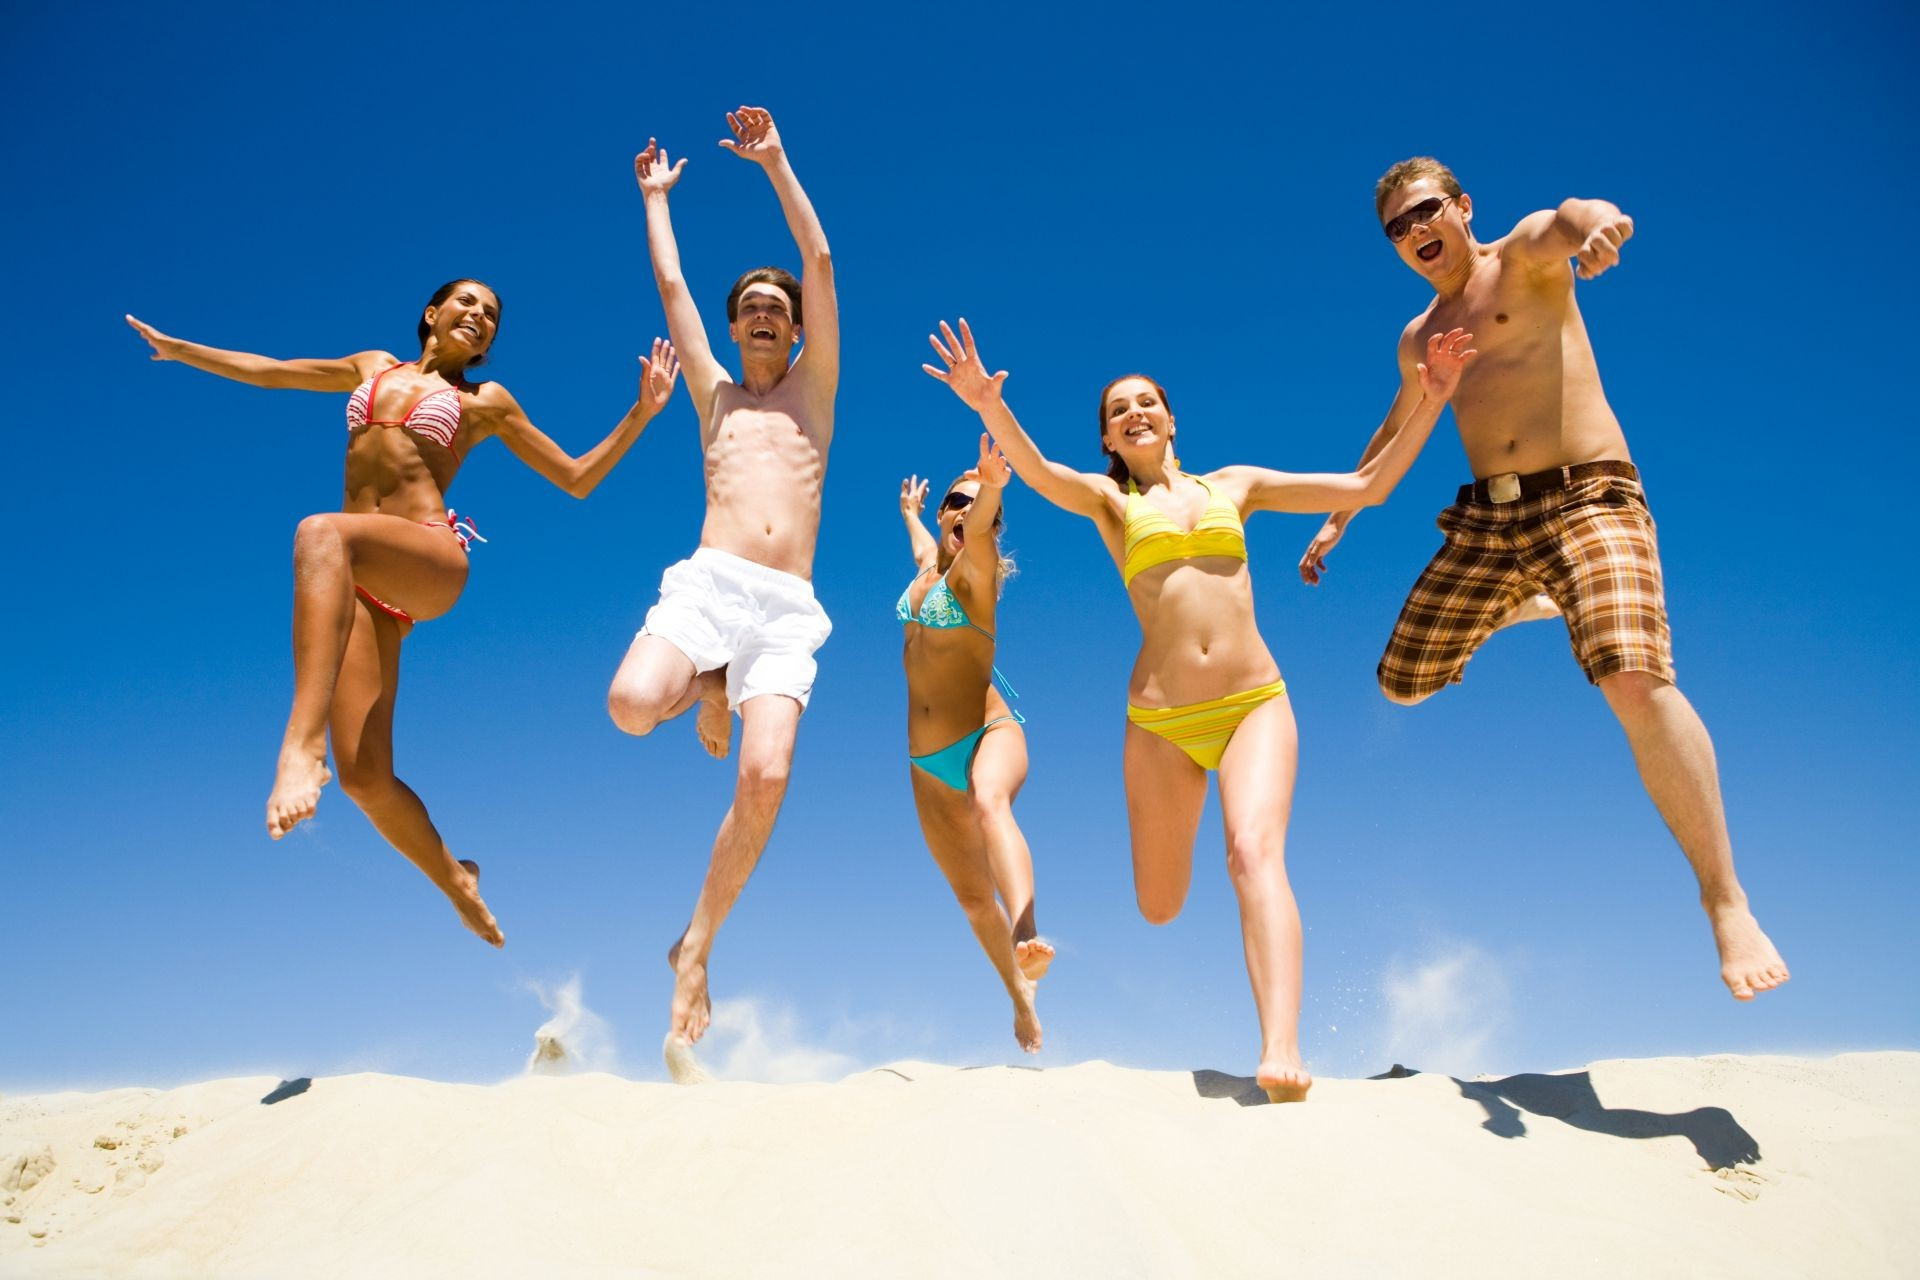 house and comfort fun leisure woman man joy enjoyment motion beach sand summer action adult carefree happiness sky